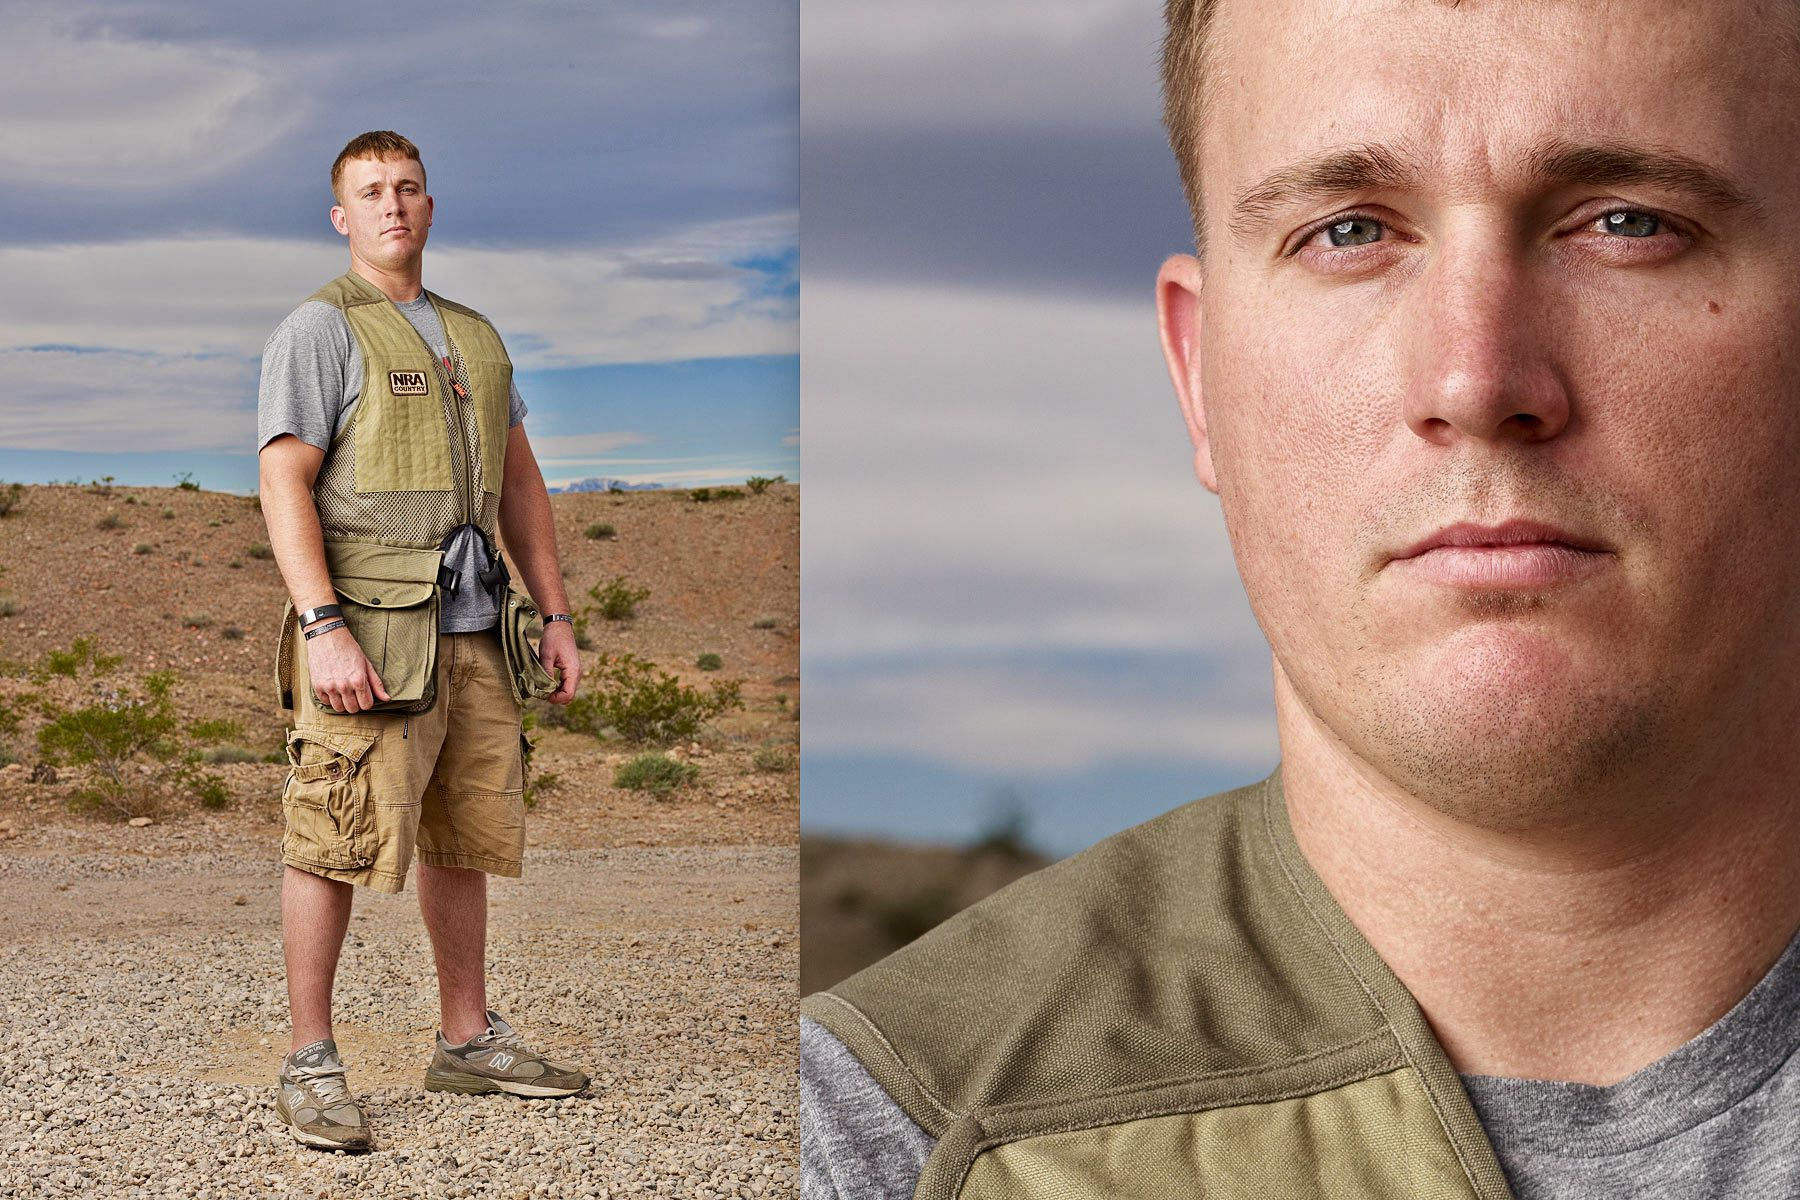 Sgt. Dakota MeyerCongressional Medal of Honor Recipient 2011Marine Scout/SniperAmerican HeroOn September 8, 2009, near the village of Ganjgal, Meyer learned that three U.S. Marines and a U.S. Navy corpsman were missing after being ambushed by a group of in